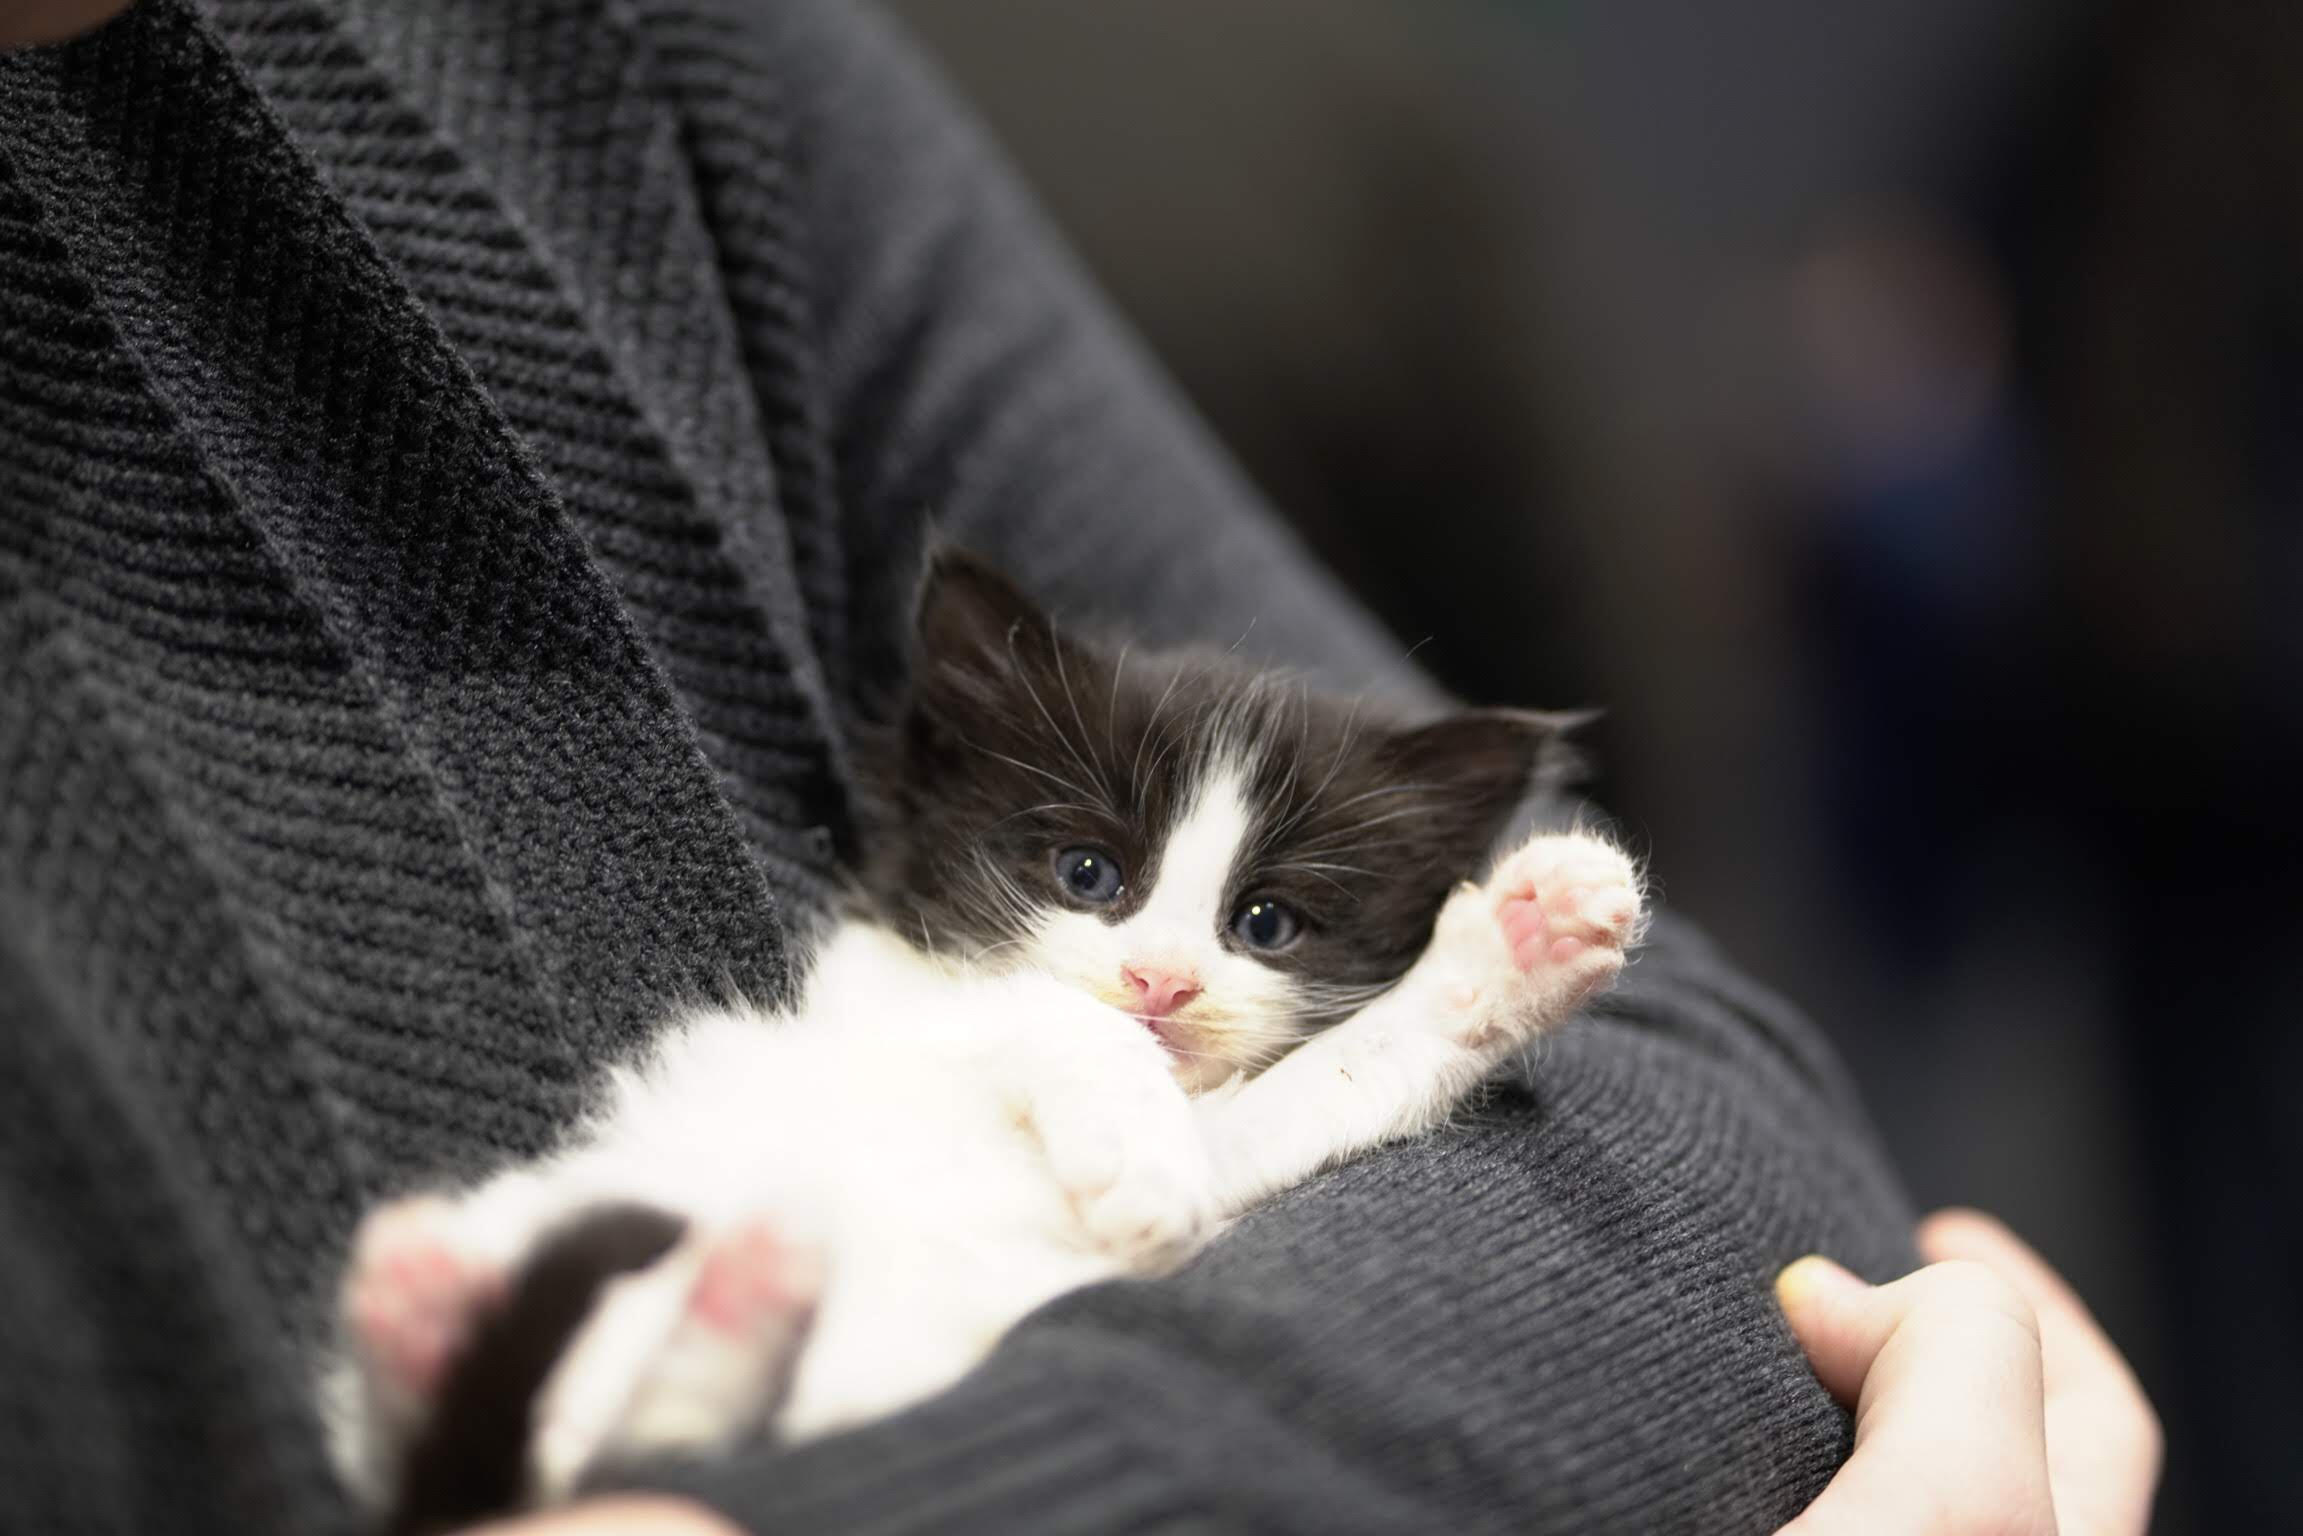 We are on a mission to save homeless, sick and dying animals. - Will you help us?